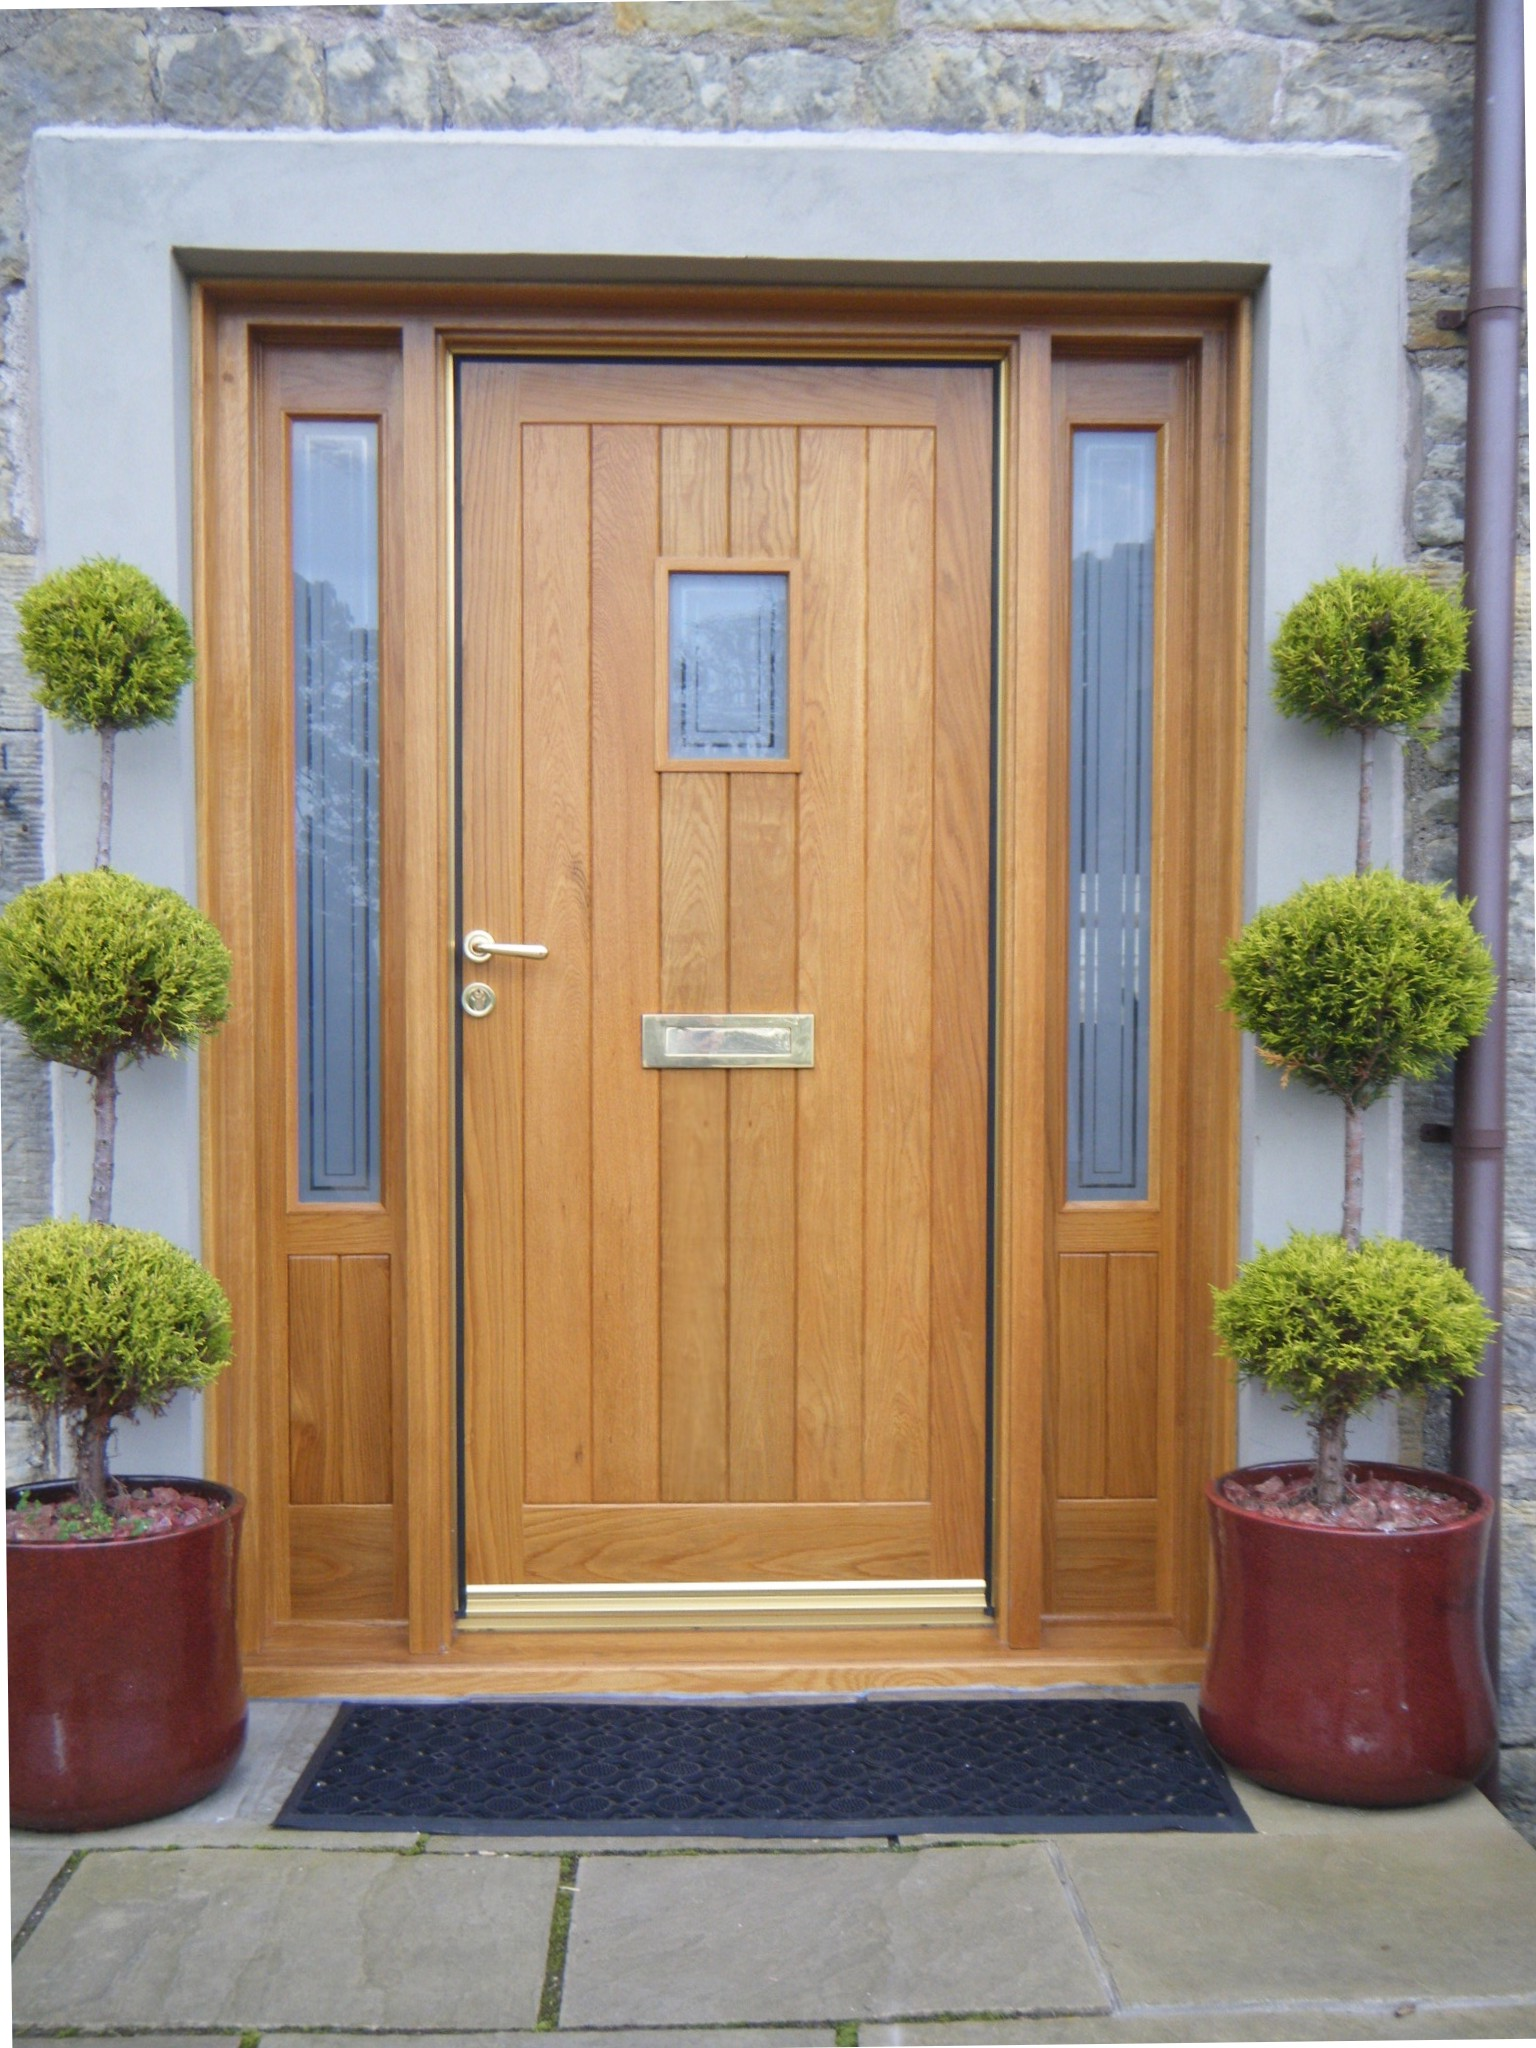 Doors external london hardwood external door hardwooddoors for Wooden door ideas